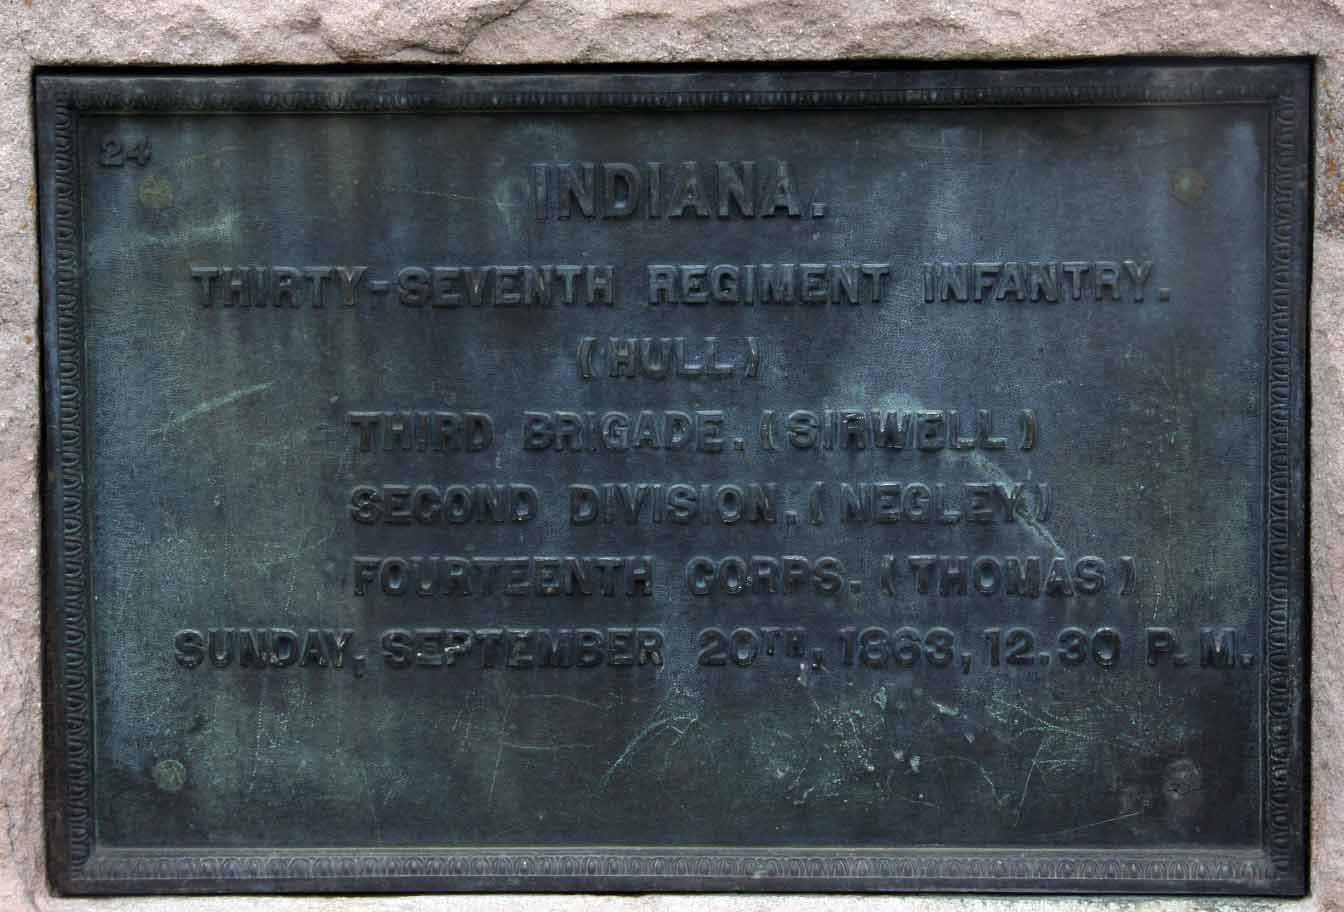 37th Indiana Infantry Regiment Marker, click photo to enlarge.